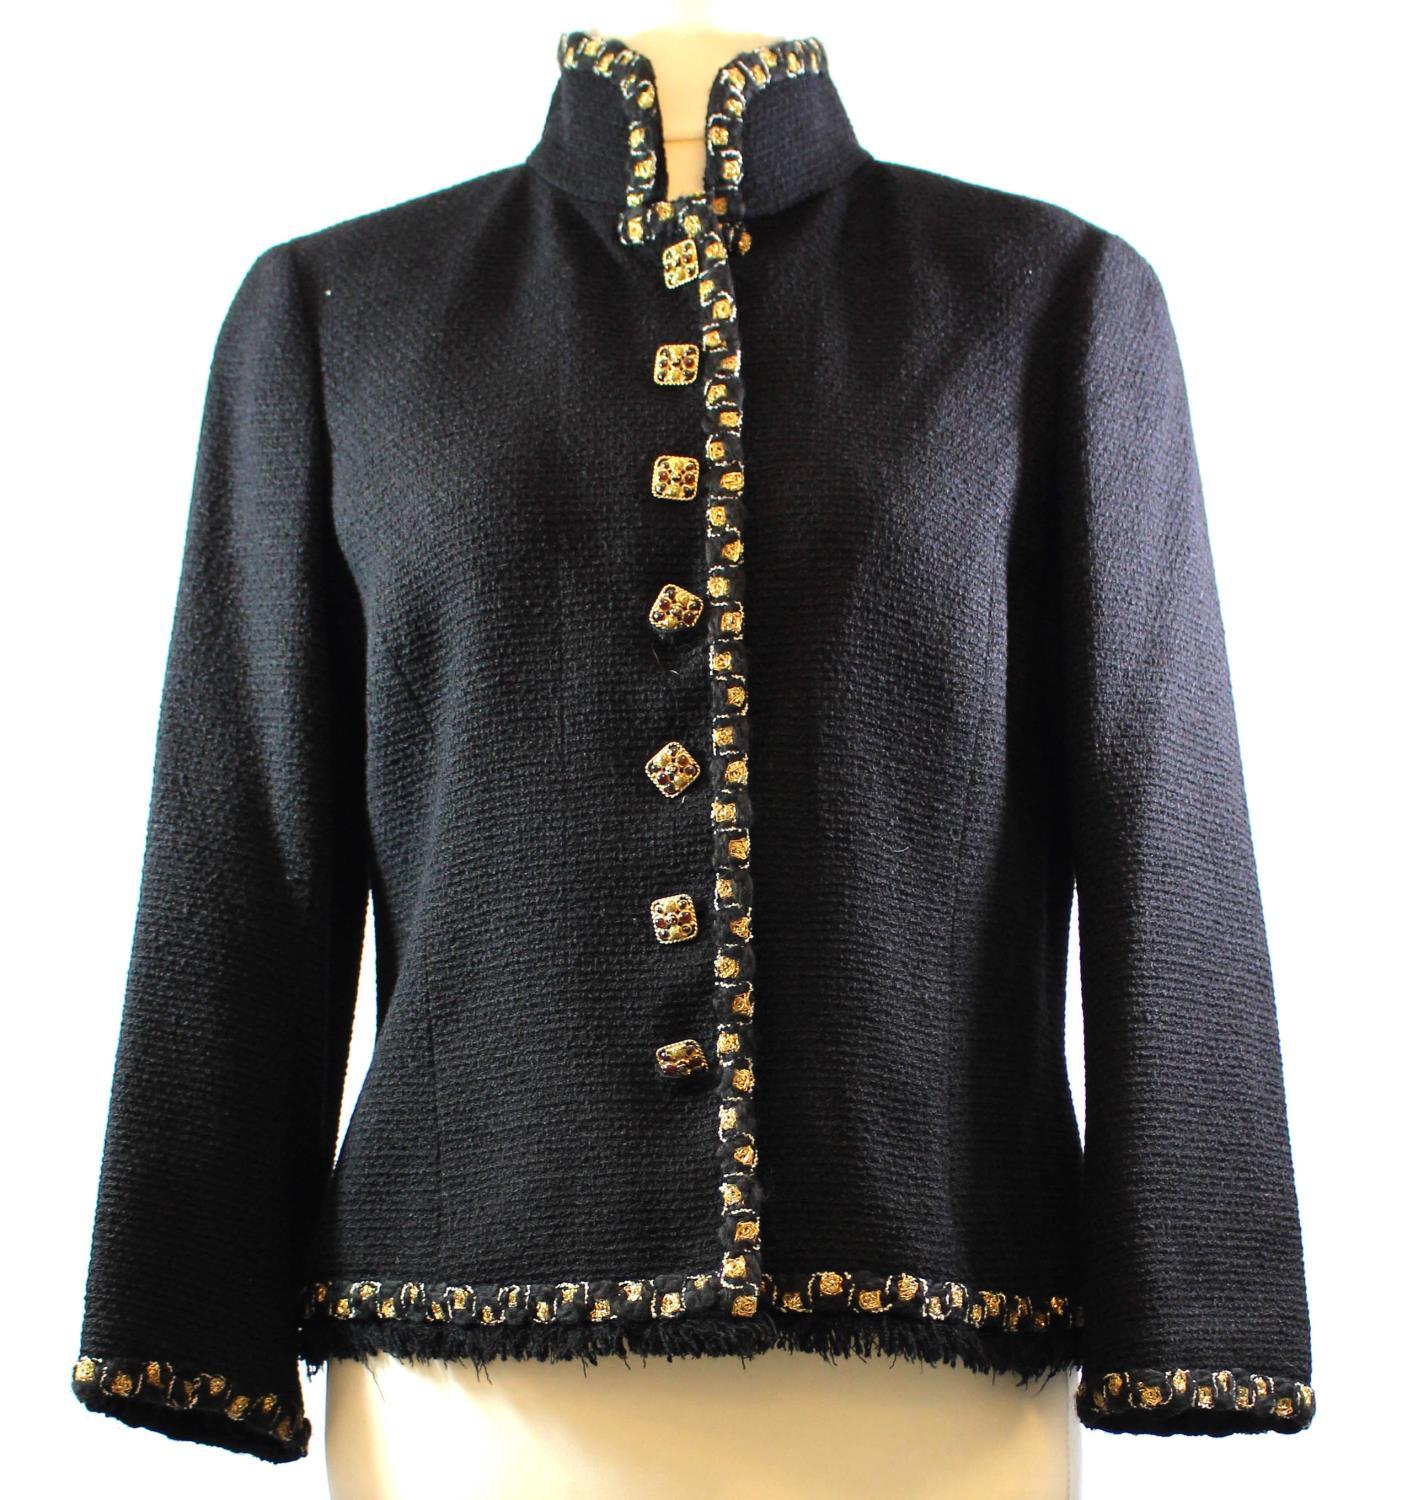 Lot 274 - CHANEL, BLACK TWEED TAILORED JACKET With fringed ends, gold and white embroidered detail and